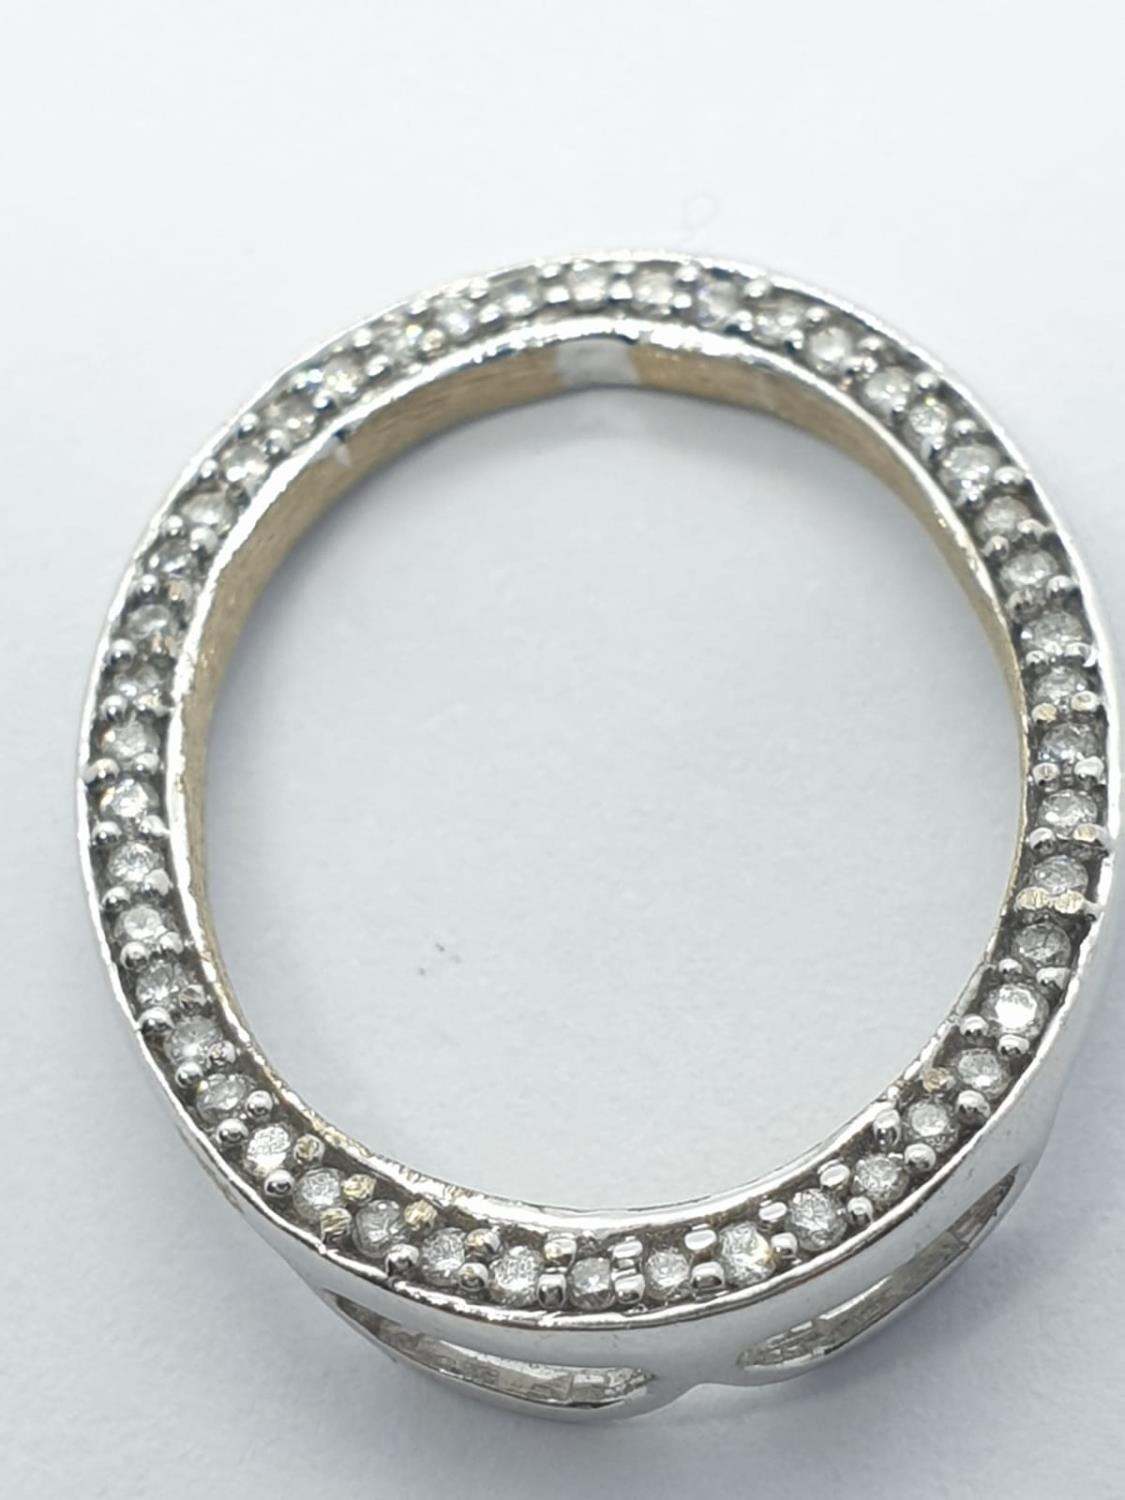 18ct white gold diamond set pendant, weight 2.3g and 2cm long approx - Image 4 of 6